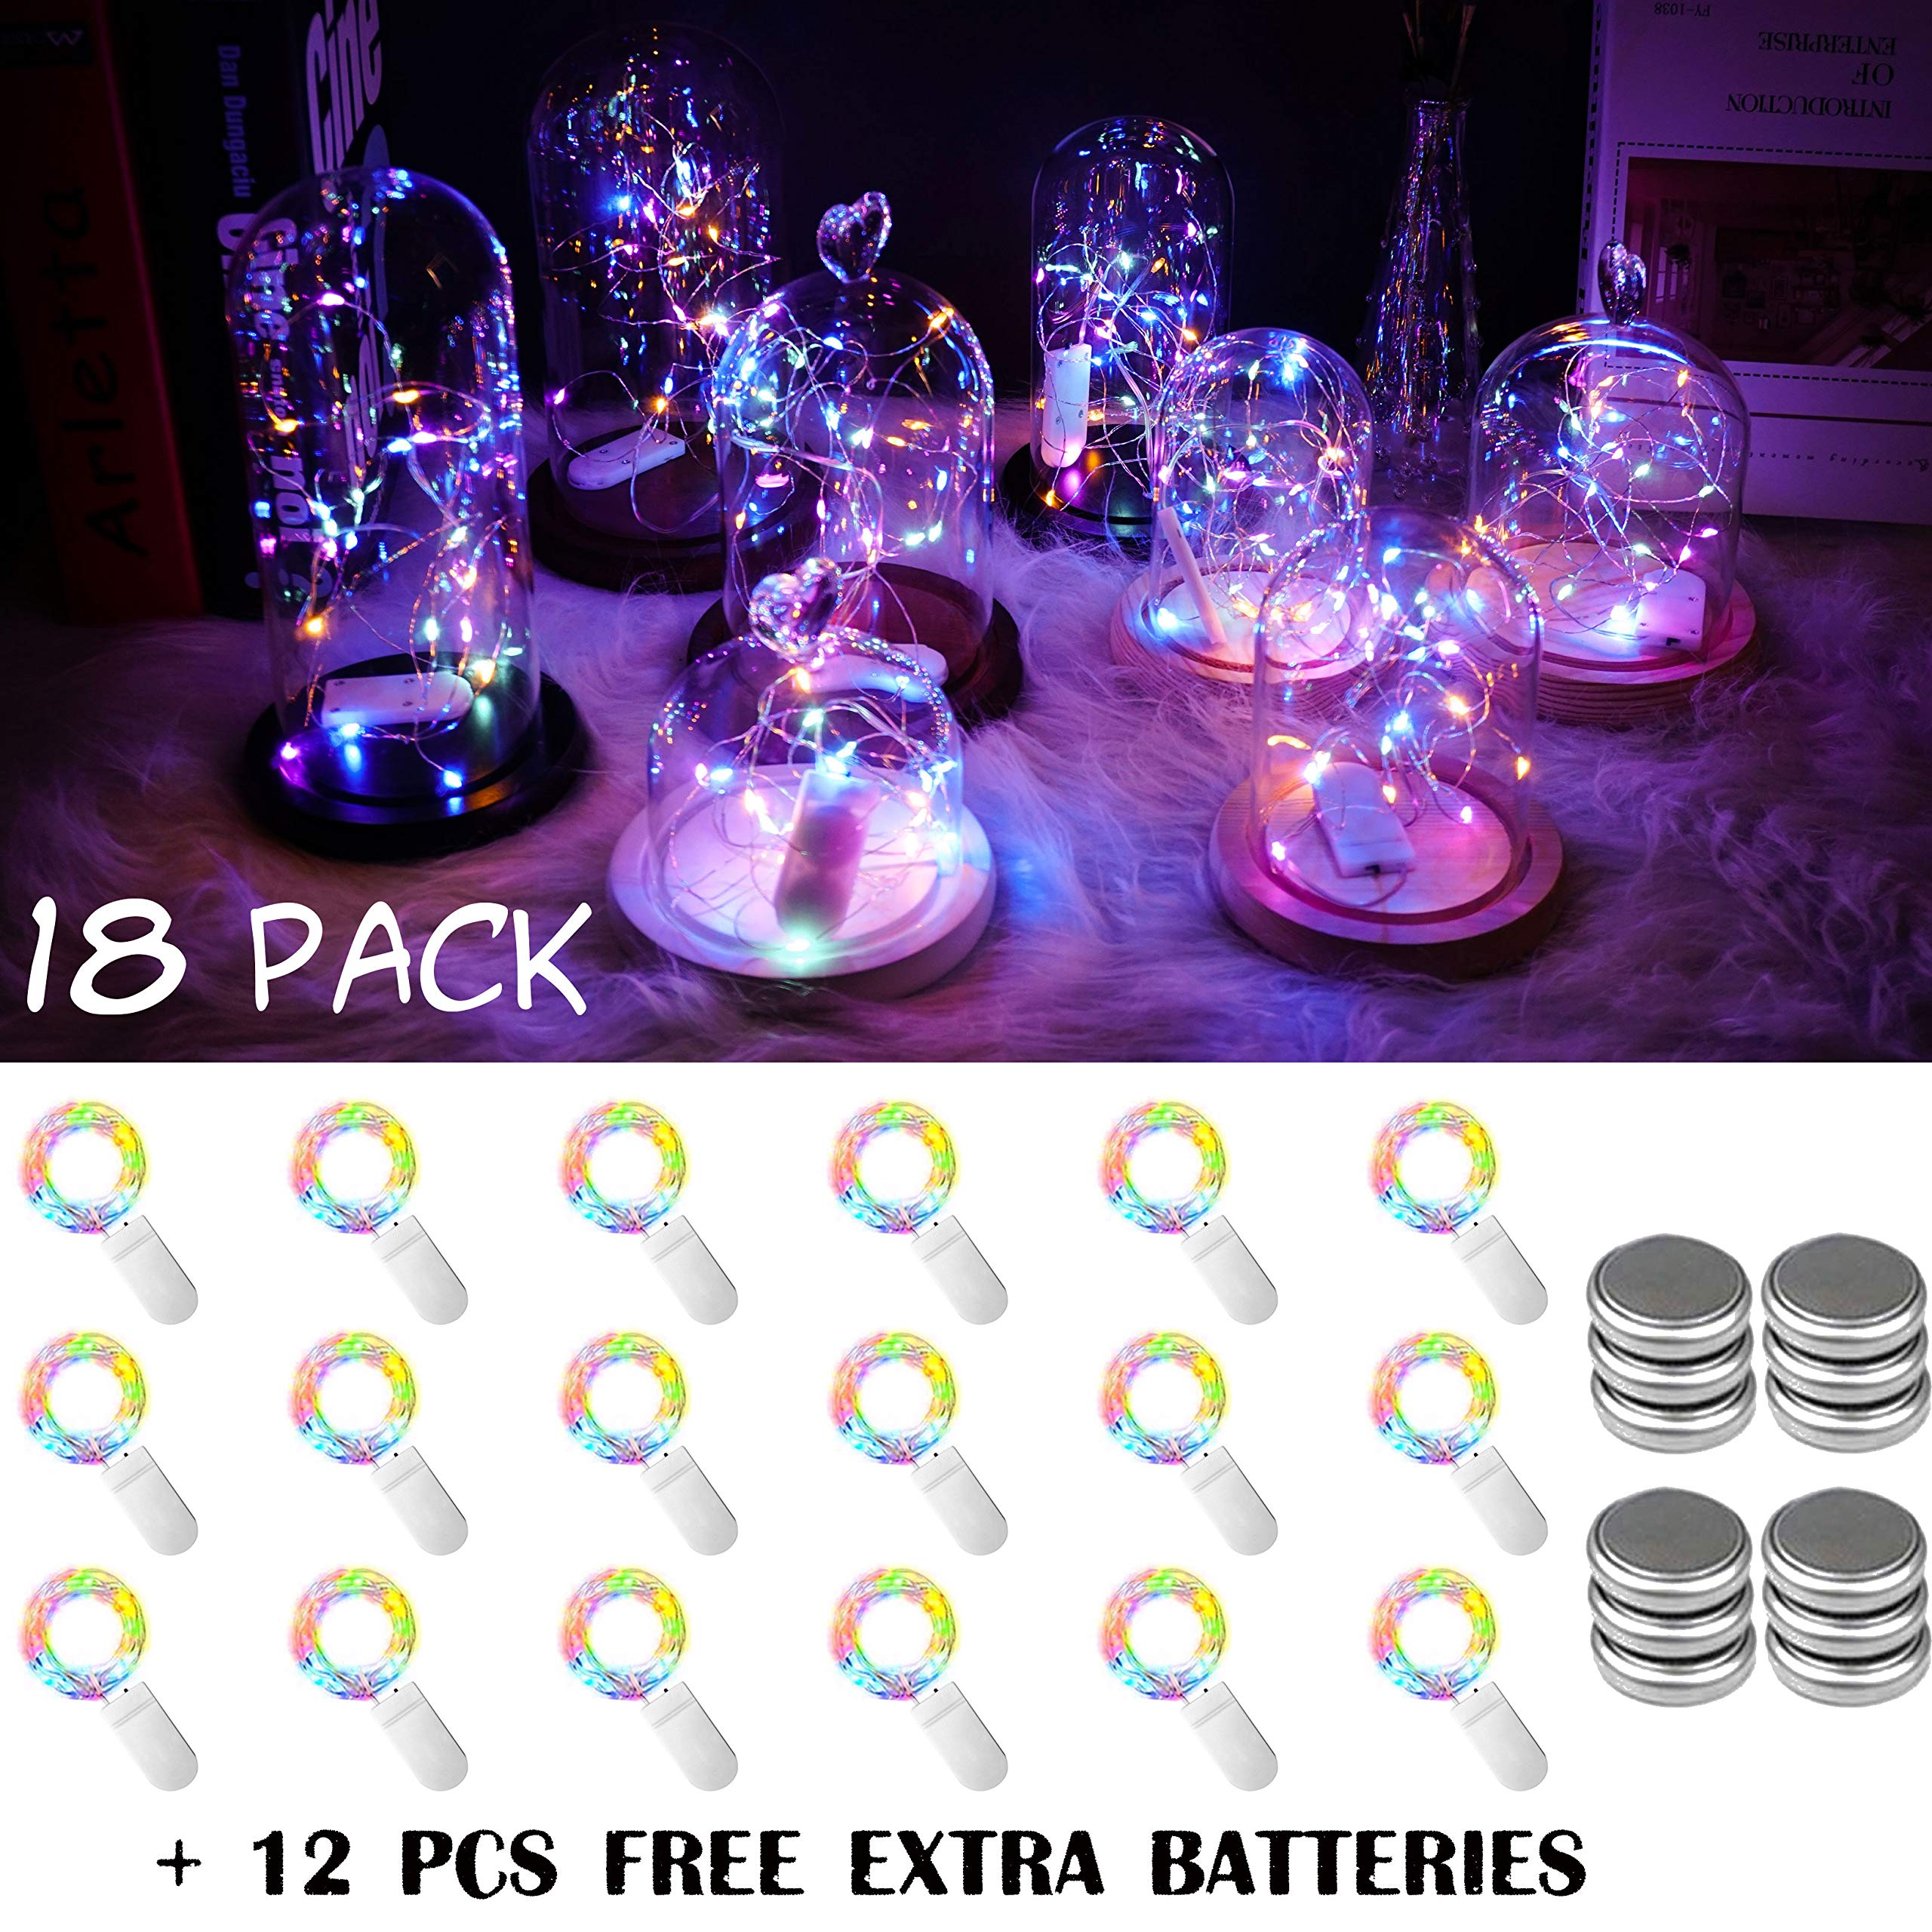 18 Pack Fairy String Lights Battery Operated String Lights with 20 Micro LEDs on 2M Silver Copper Wire Starry String Light for DIY Party Christmas Costume Wedding Easter Table Decorations (Colorful)